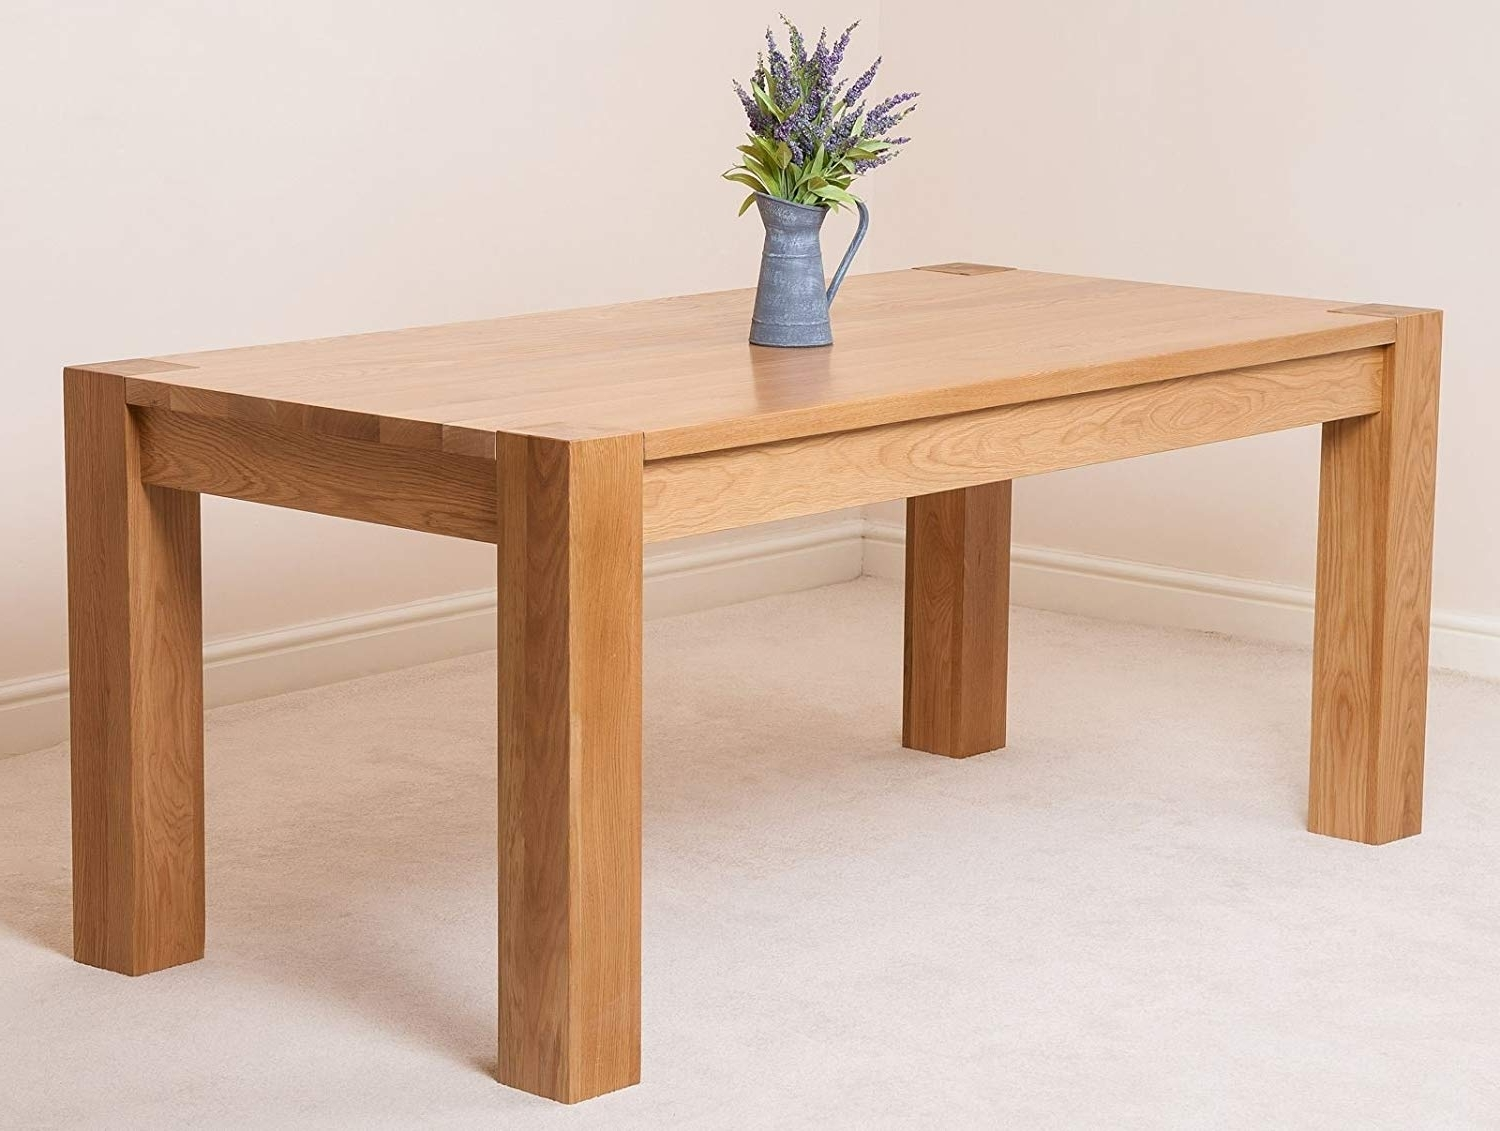 Solid Oak Dining Tables With Popular Kuba Chunky Solid Oak 180 X 90 X 78 Cm Dining Room Kitchen Table (View 18 of 25)